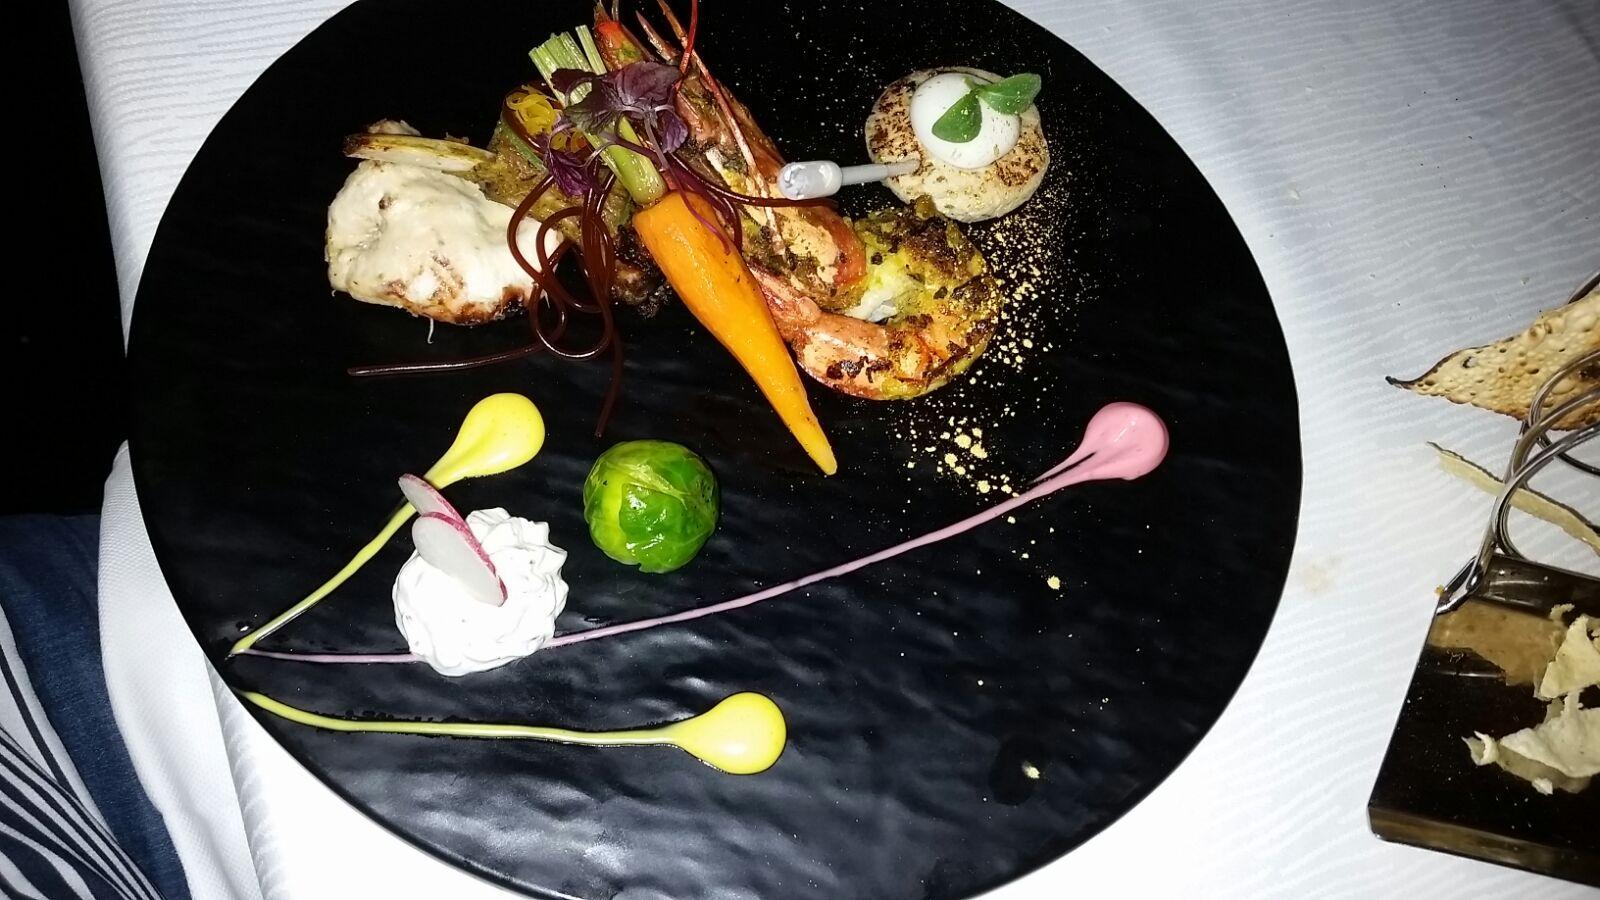 Restaurant Review: Molecular Gastronomy at Signature by Sanjeev Kapoor